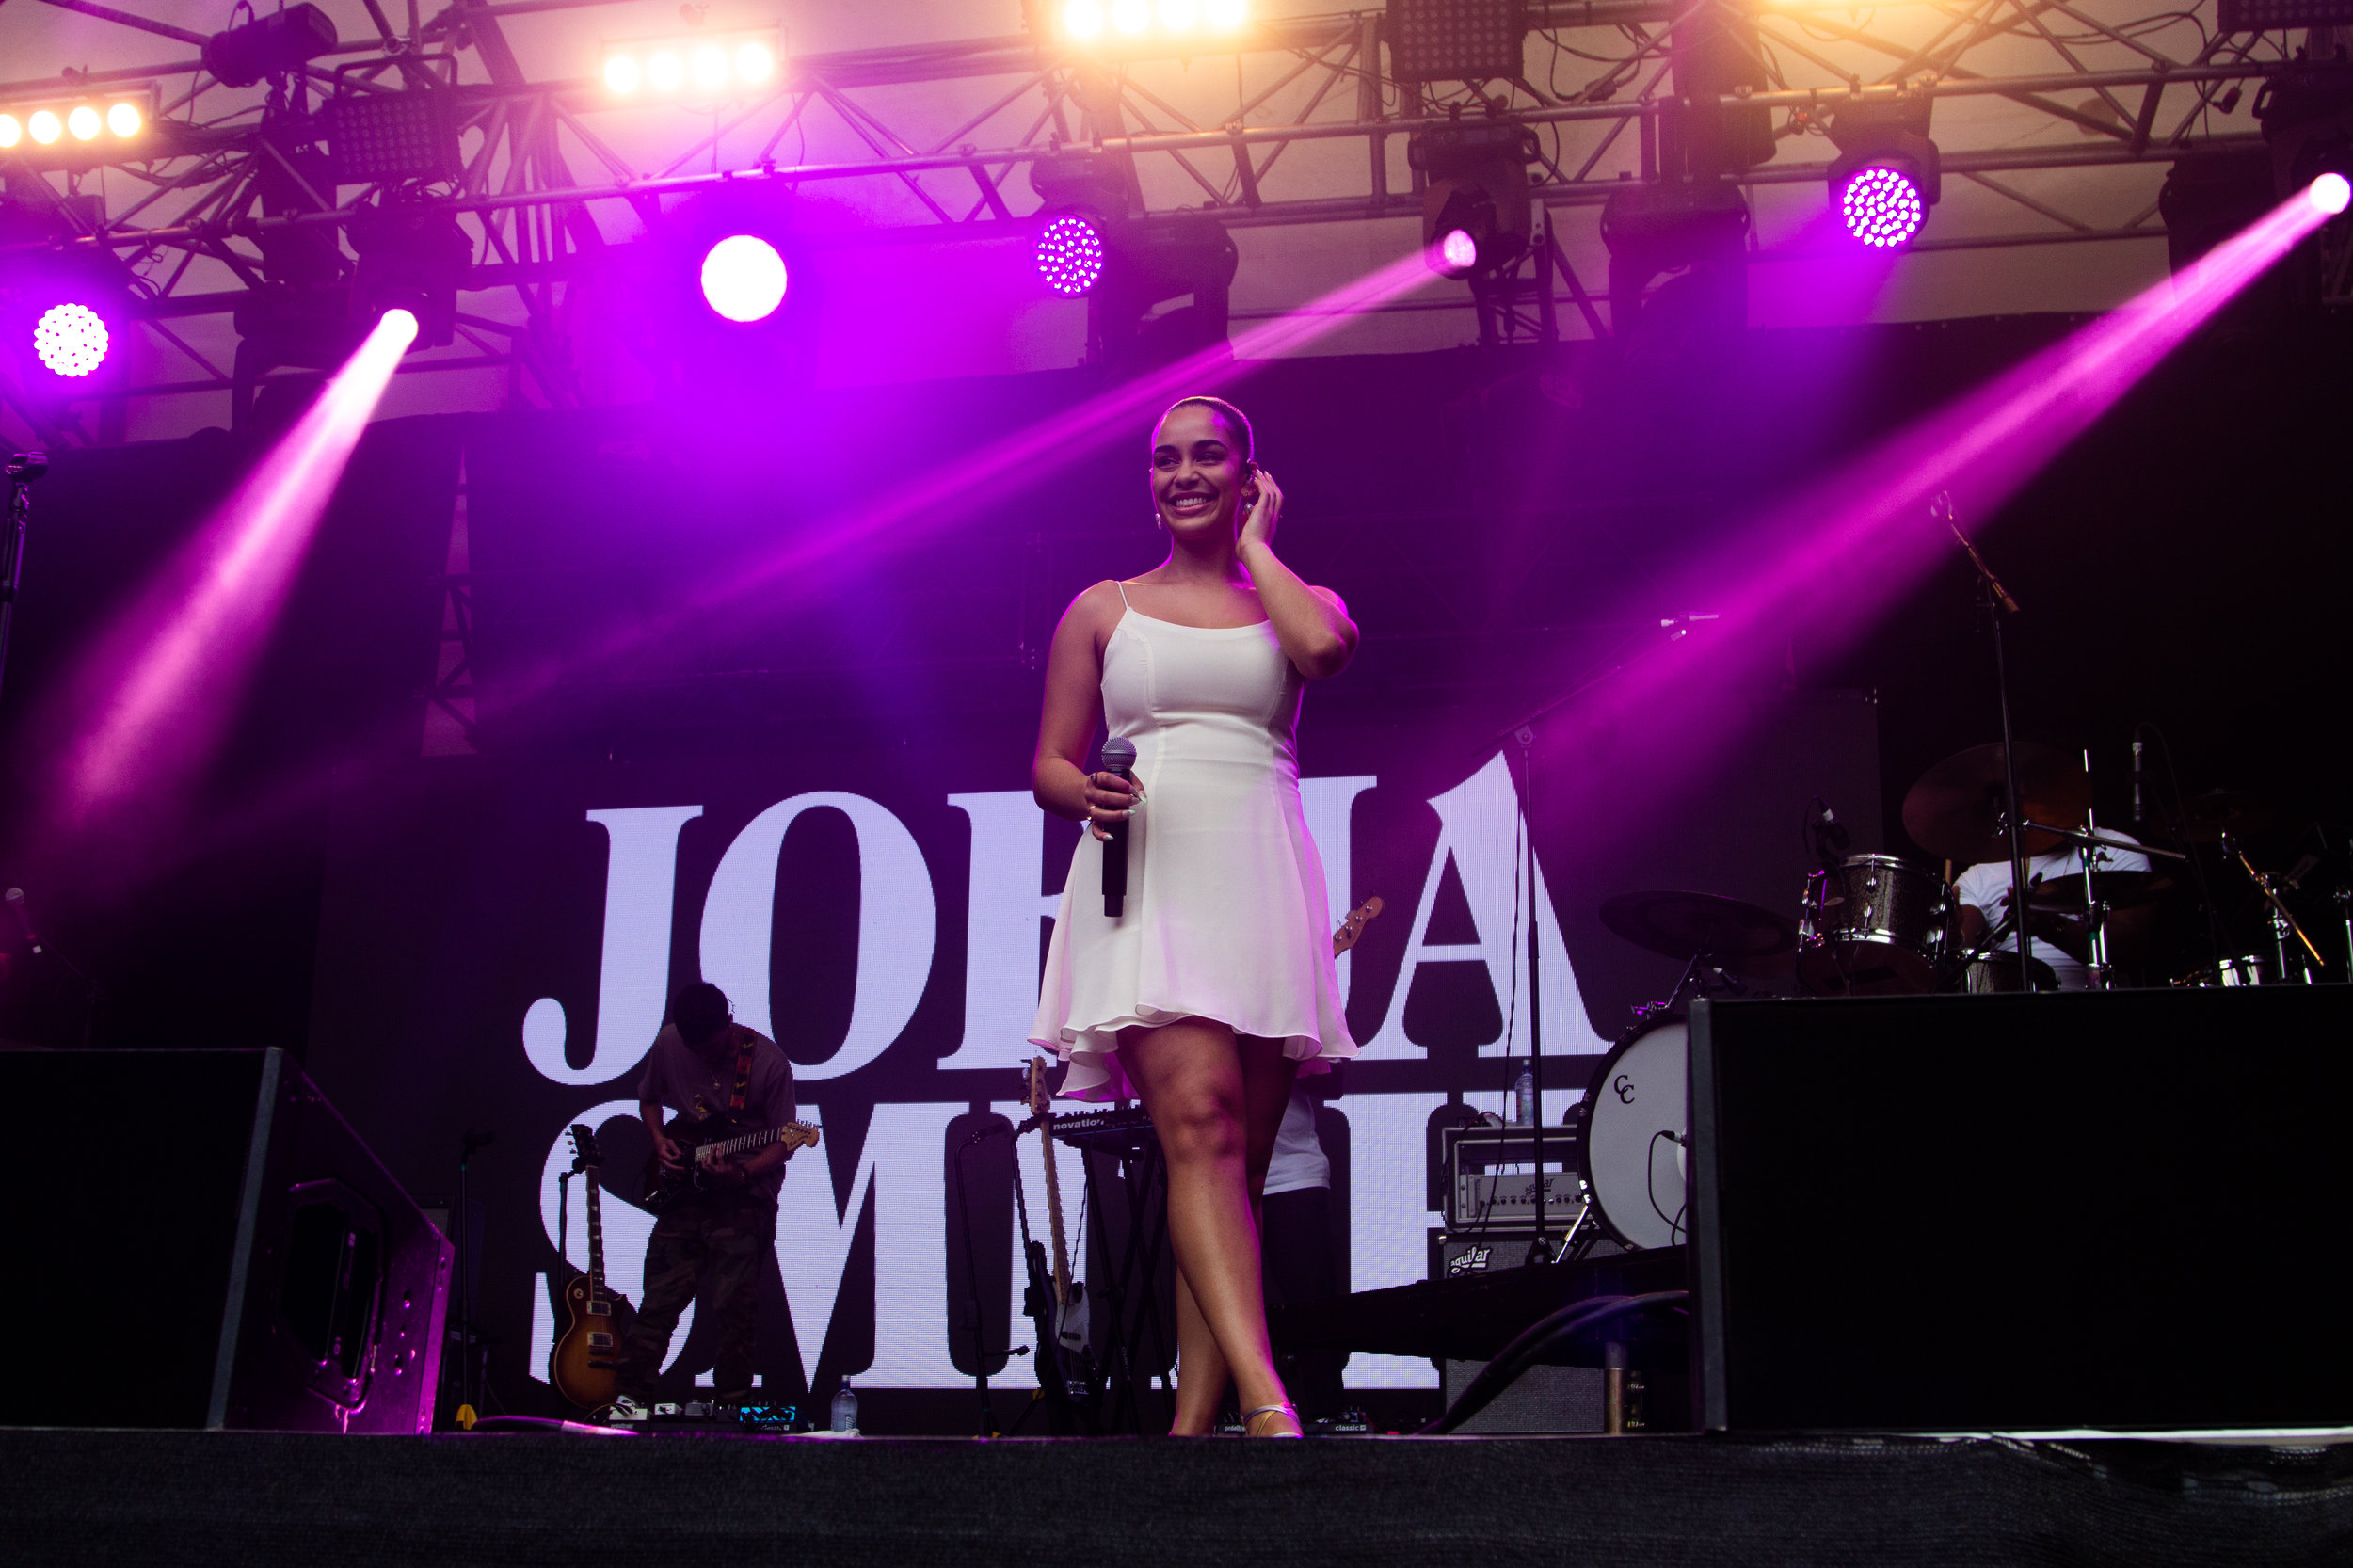 Jorjia-Smith-6904.jpg